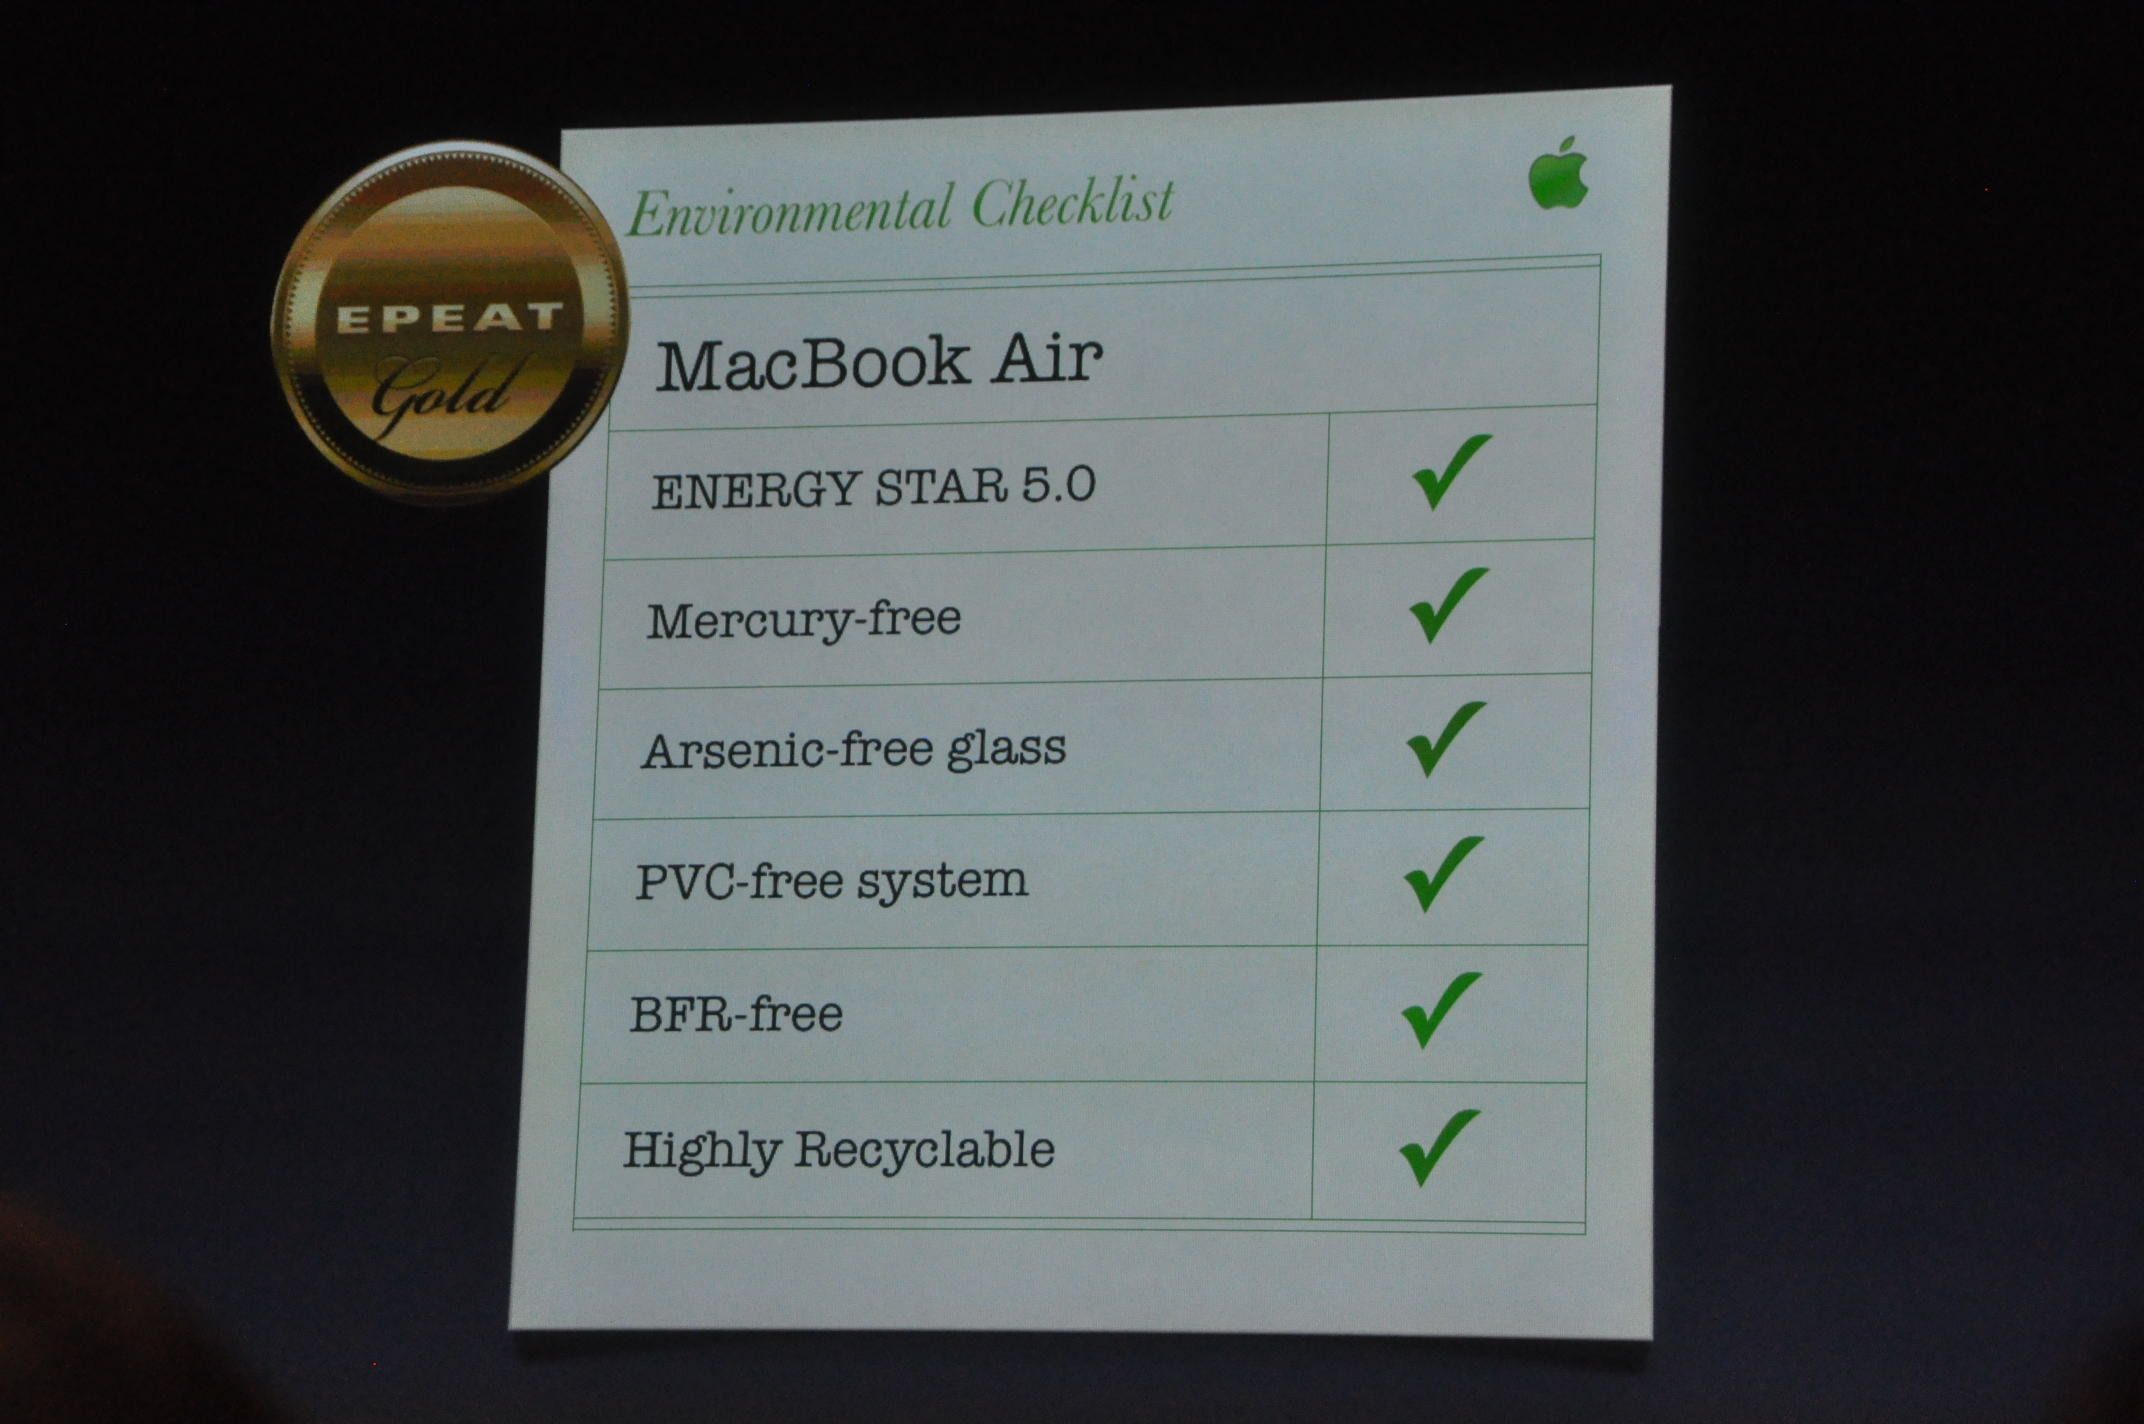 Green standards for MacBook Air